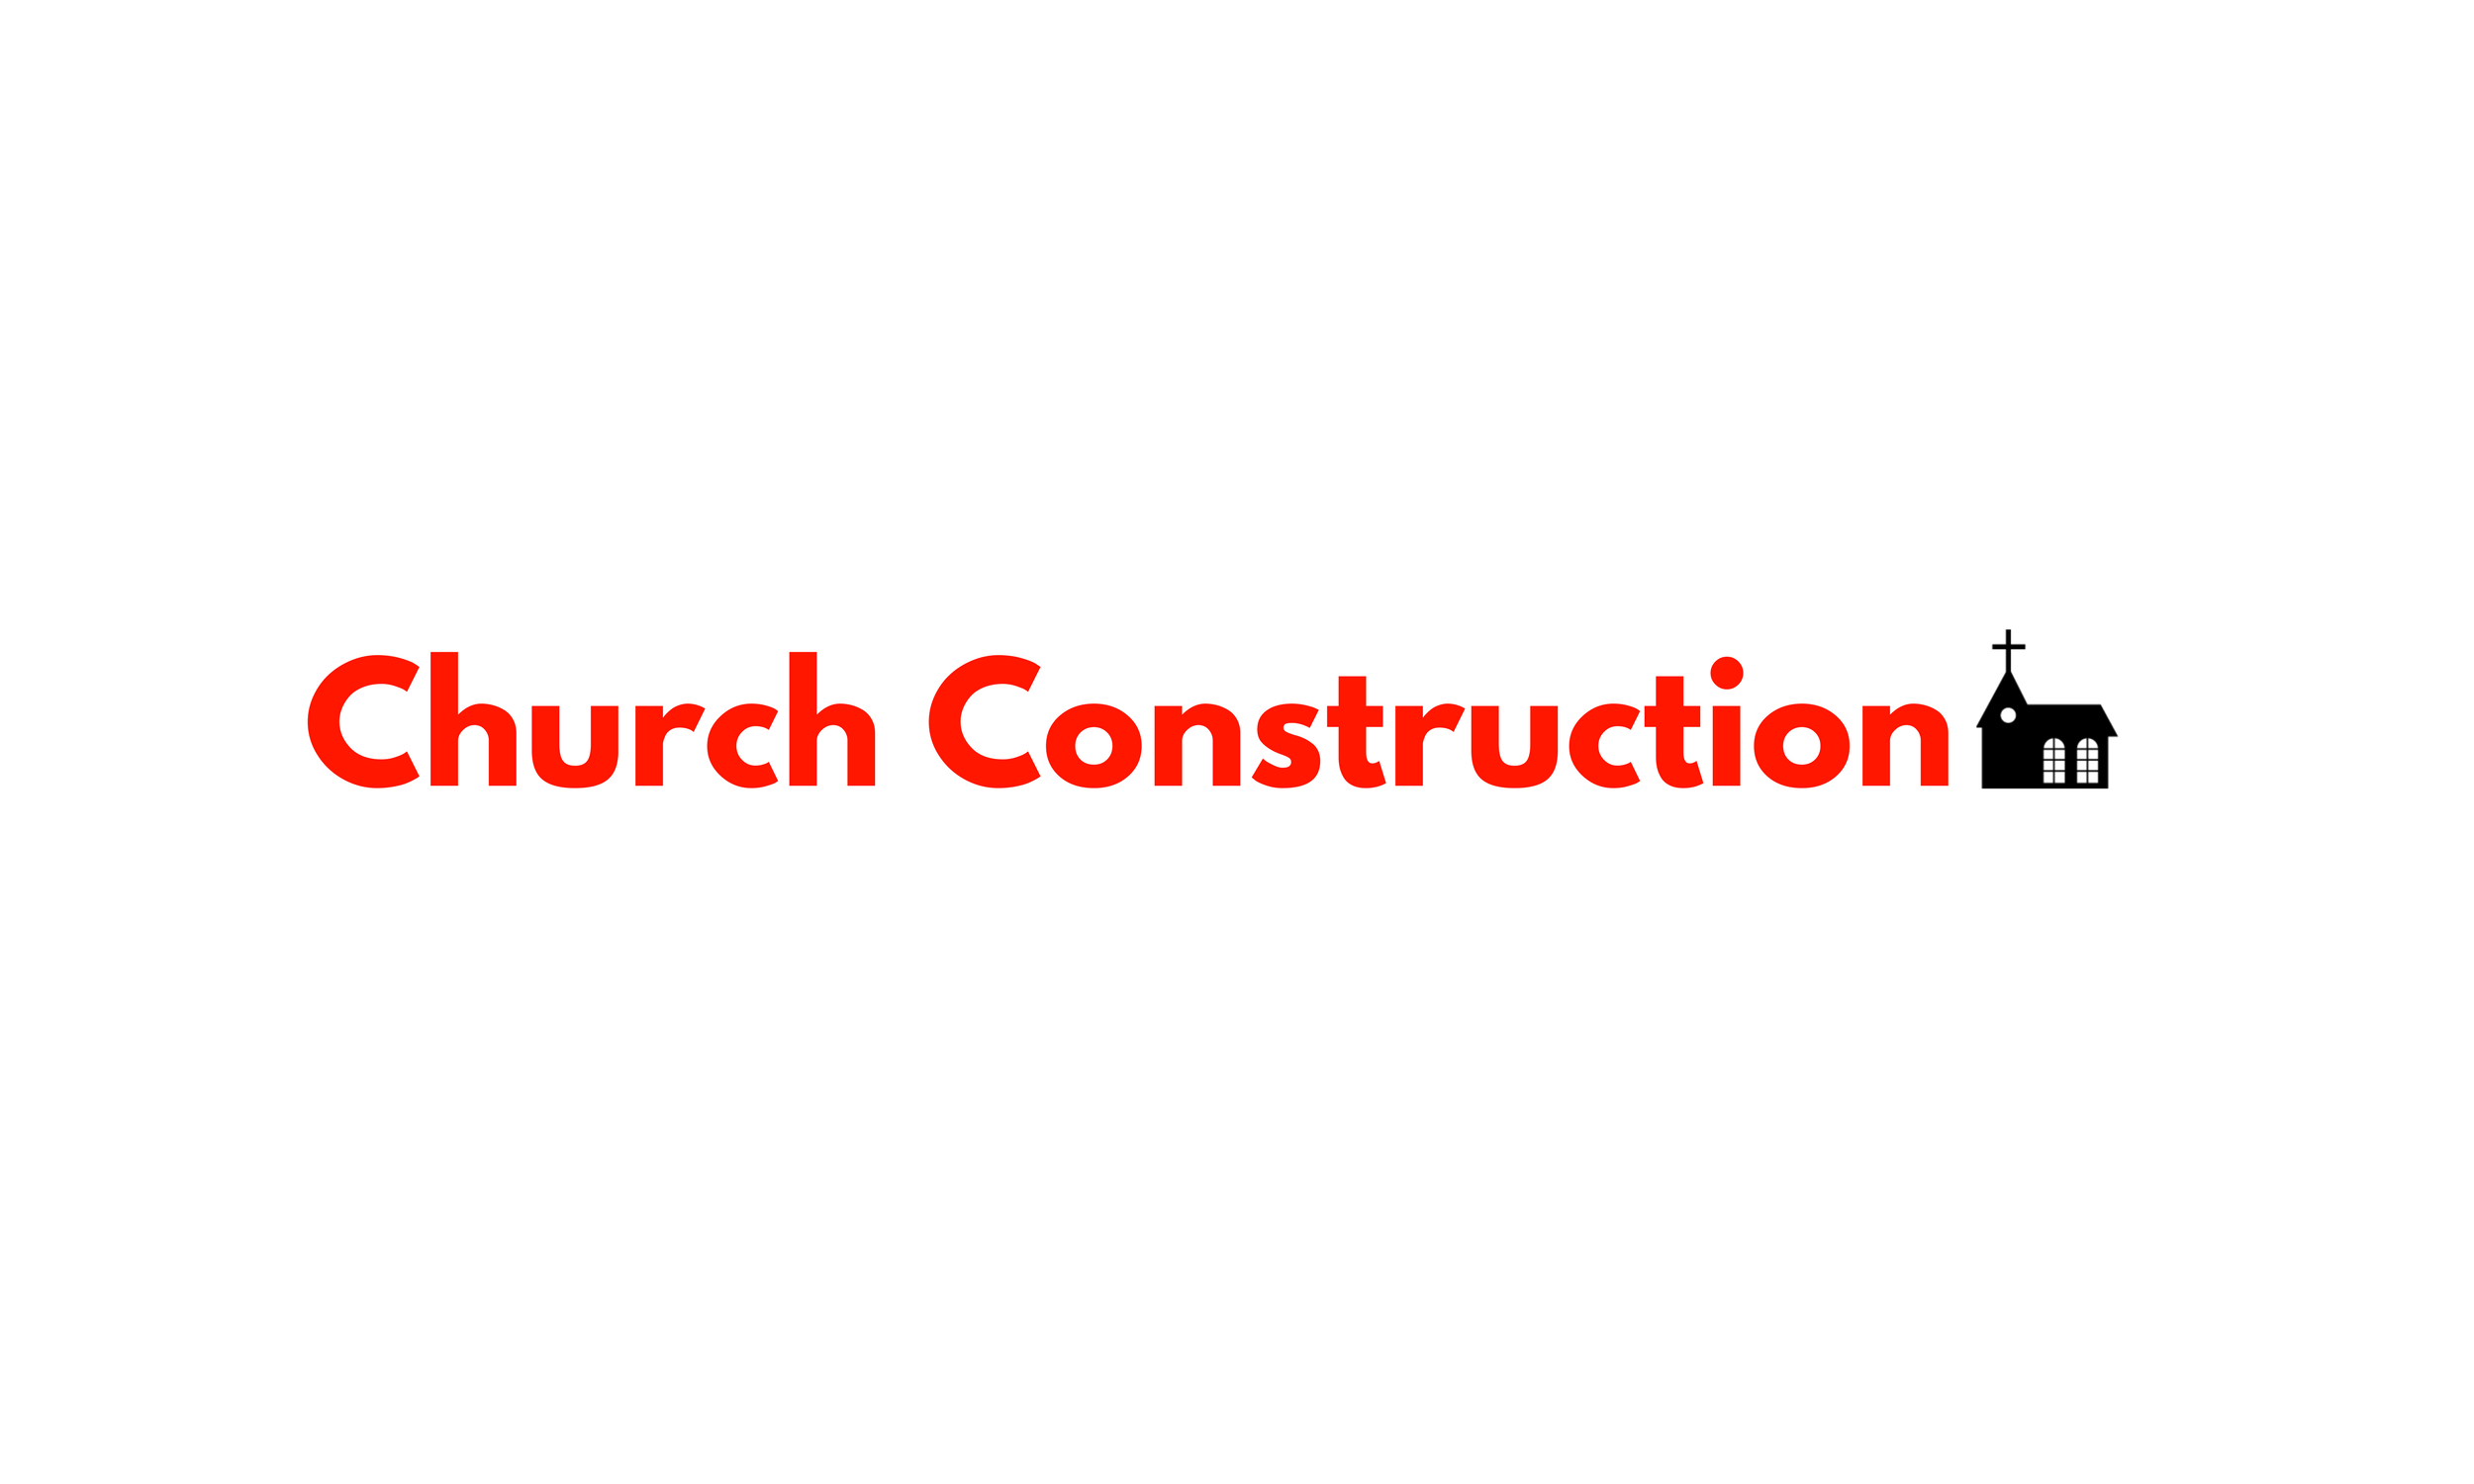 evans-construction-church-builders-general-contractors-virginia